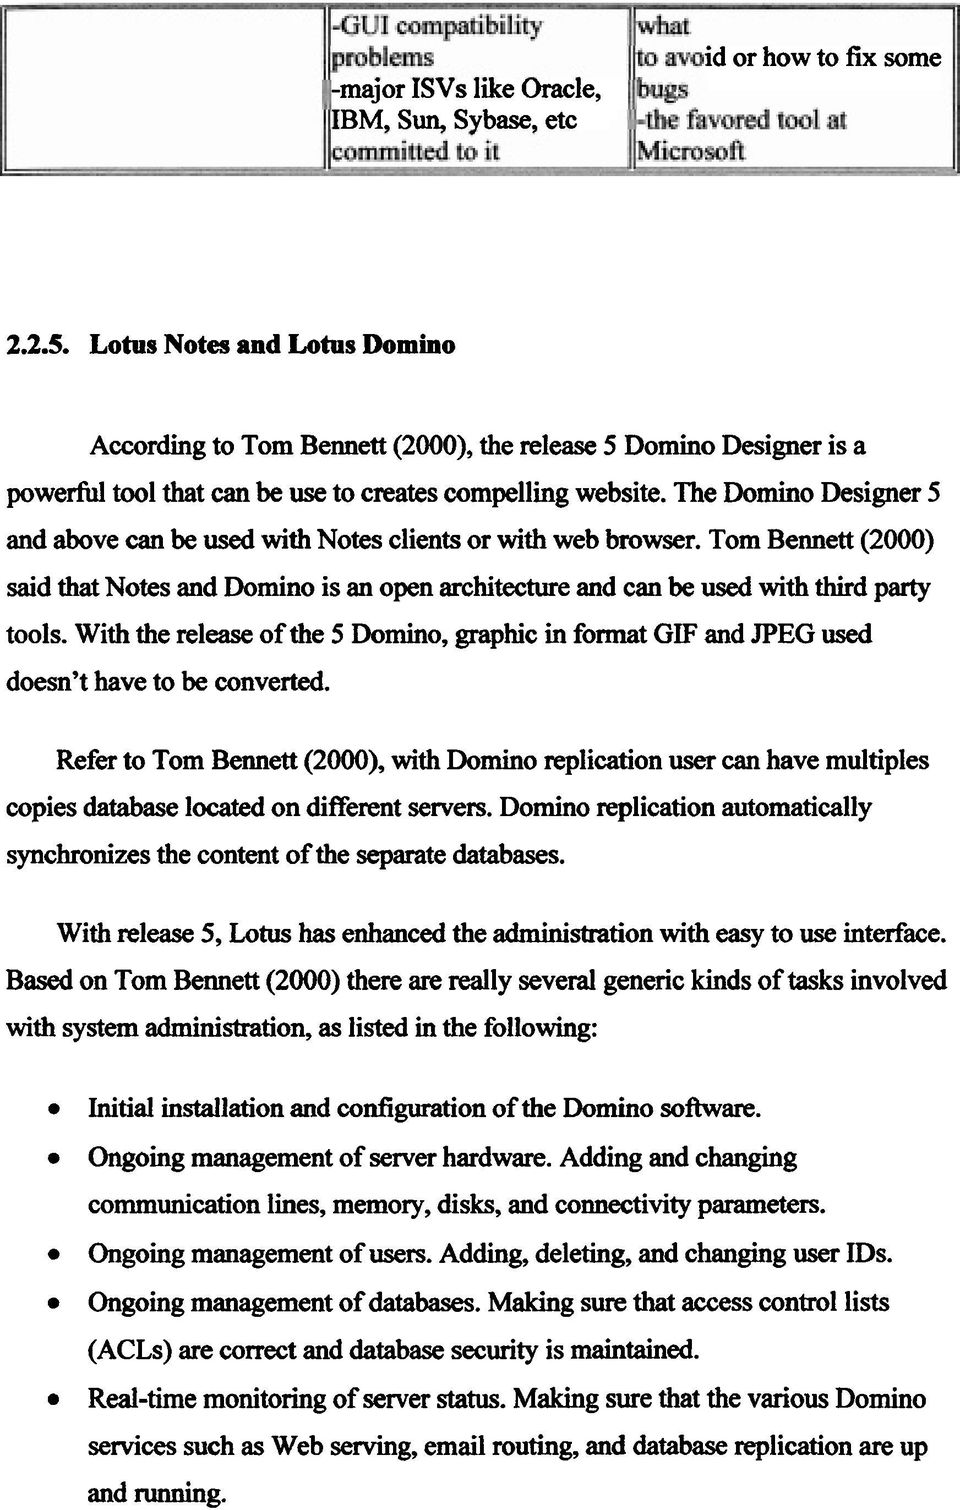 The Domino Designer 5 and above can be used with Notes clients or with web browser. Tom Bennett (2000) said that Notes and Domino is an open architecture and can be used with third party tools.